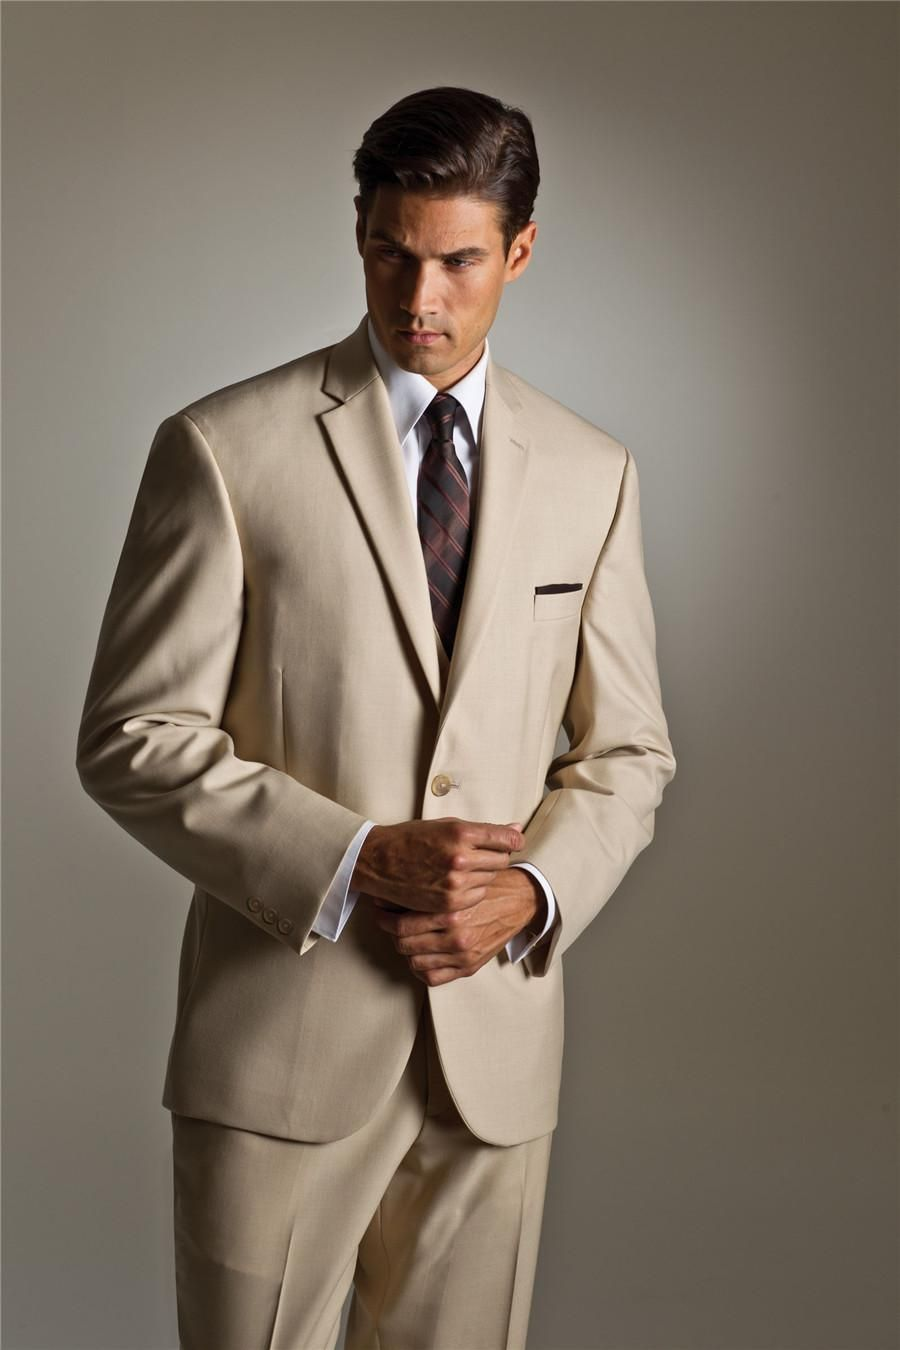 beige-jackets-wedding-suit-groomsman-bridesman | suits | Pinterest ...